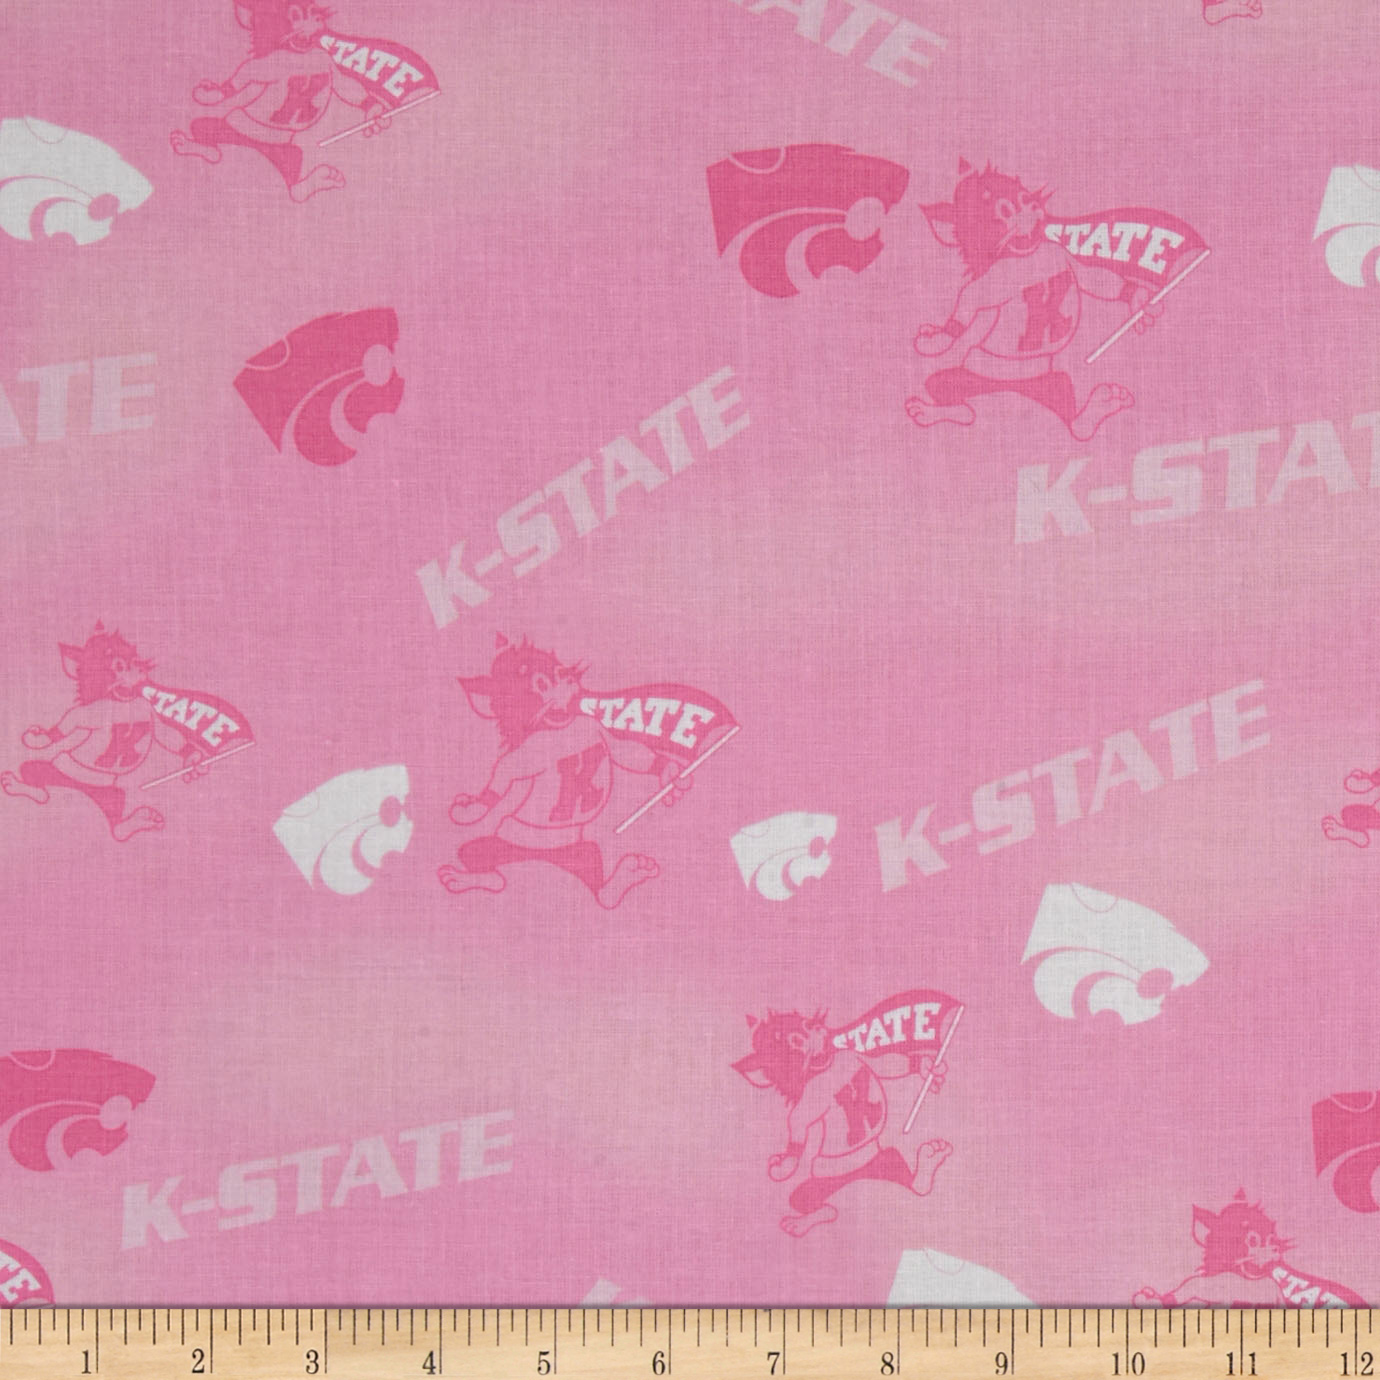 Collegiate Cotton Broadcloth Kansas State Pink Fabric